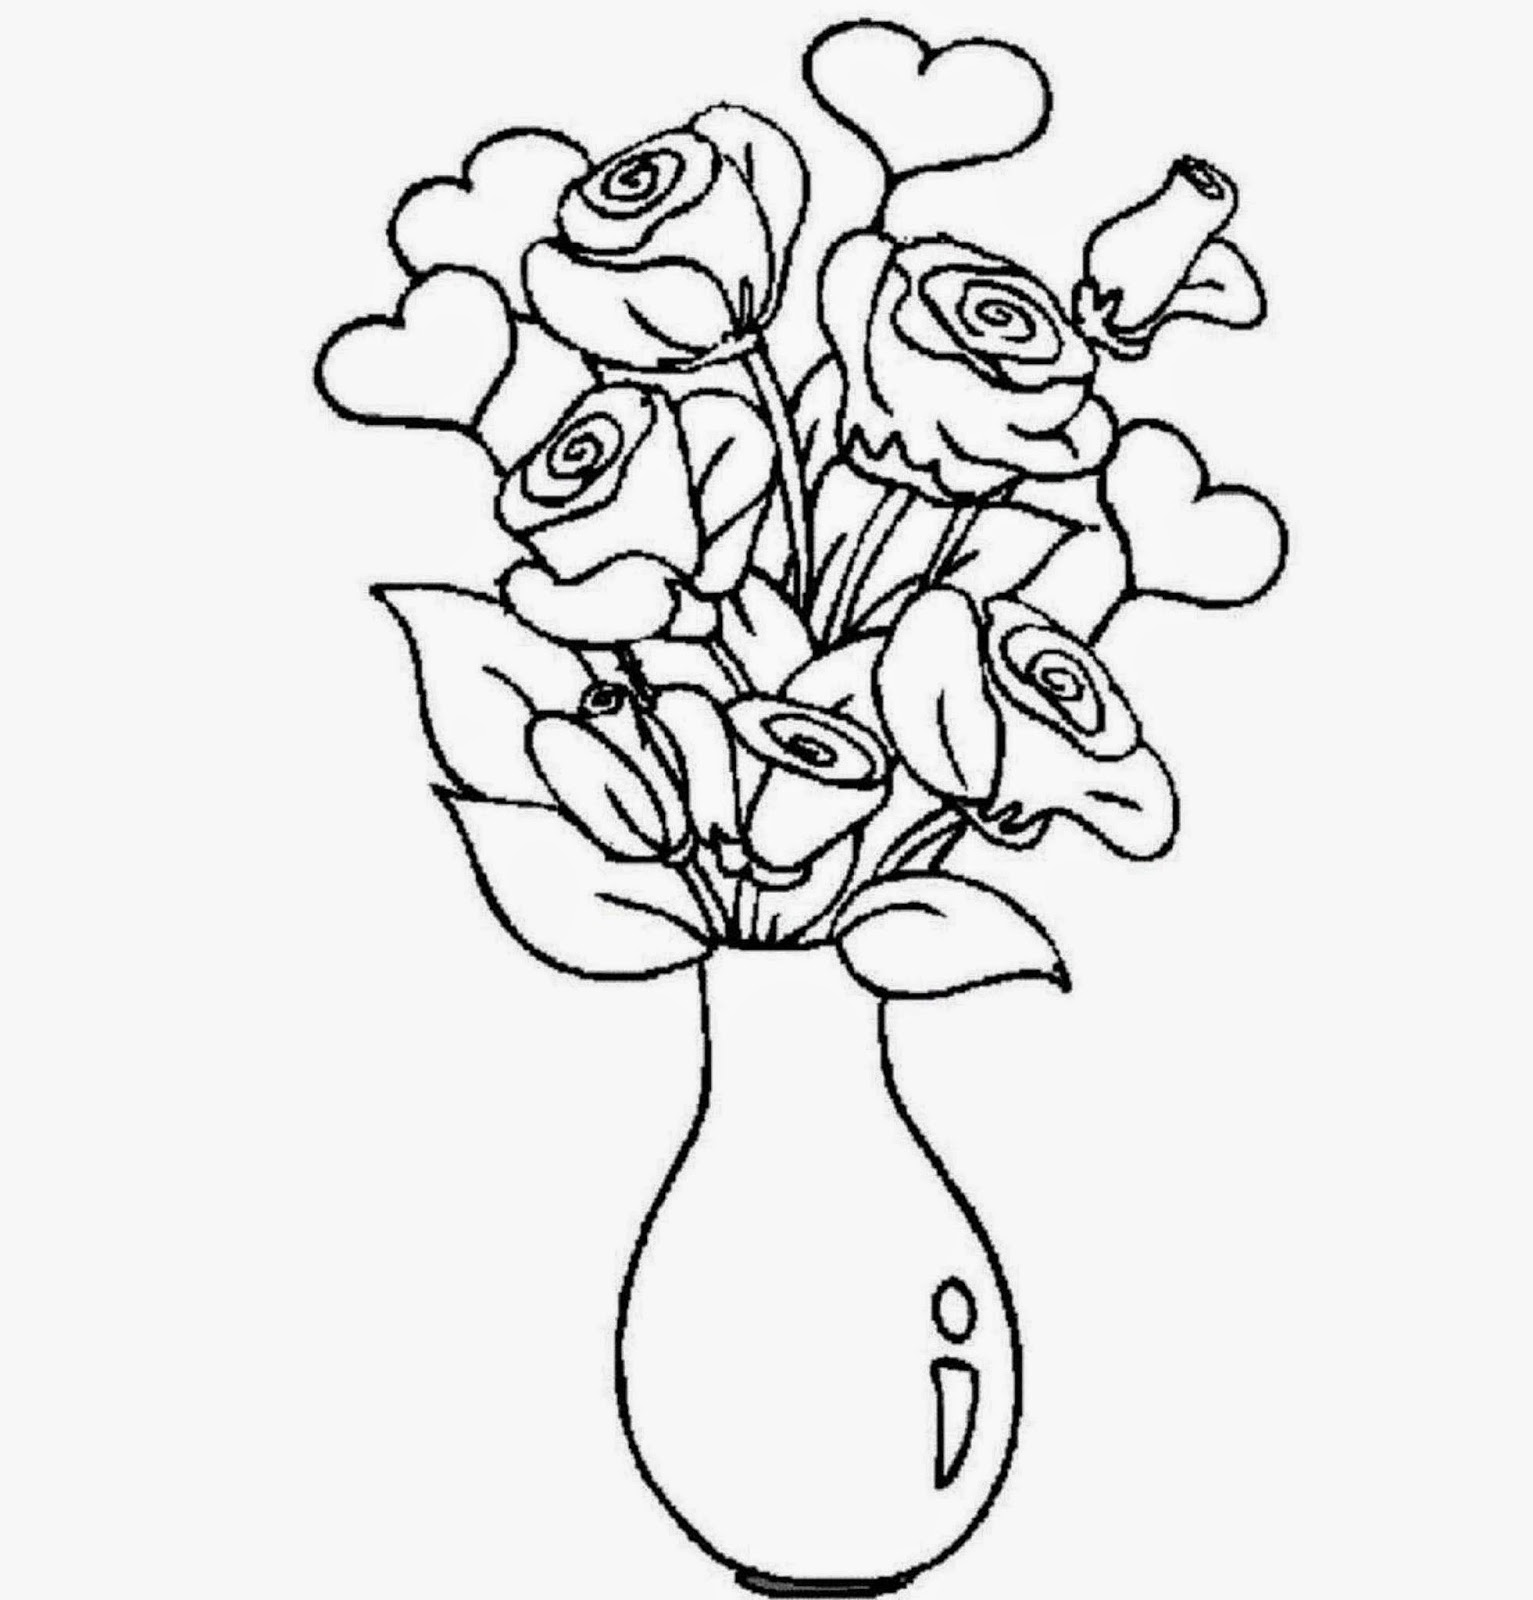 Flowers Easy to Draw Colored Flowers Vase Coloring Drawing